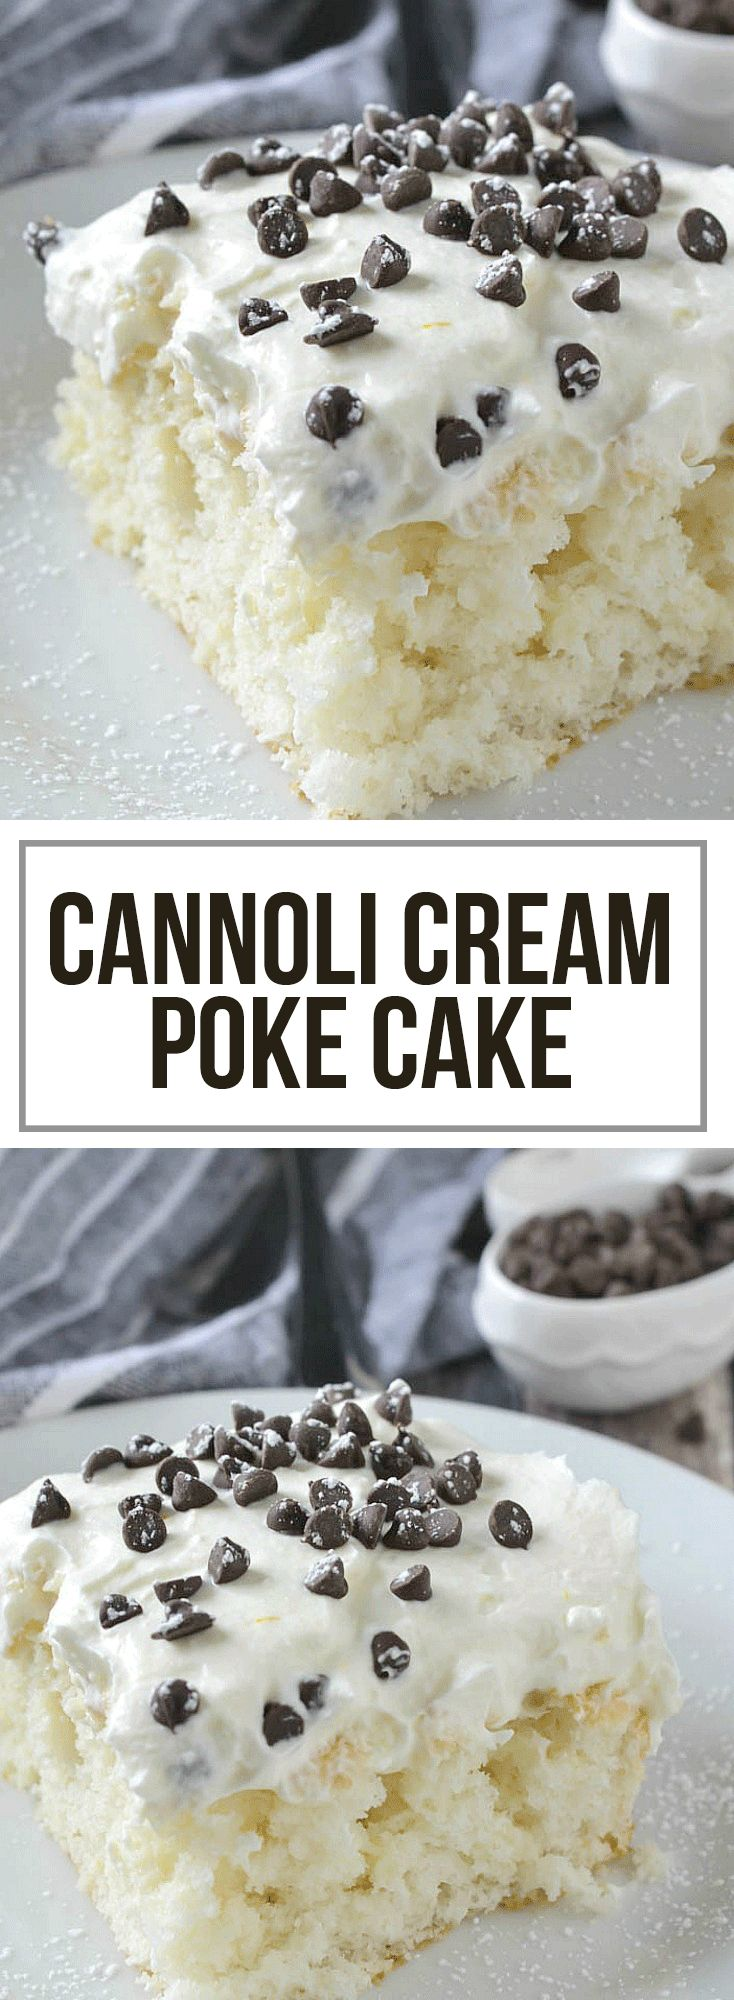 An easy recipe for Cannoli Cream Poke Cake topped with a sweet ricotta whipped cream, mini chocolate chips and a light dusting of powdered sugar.